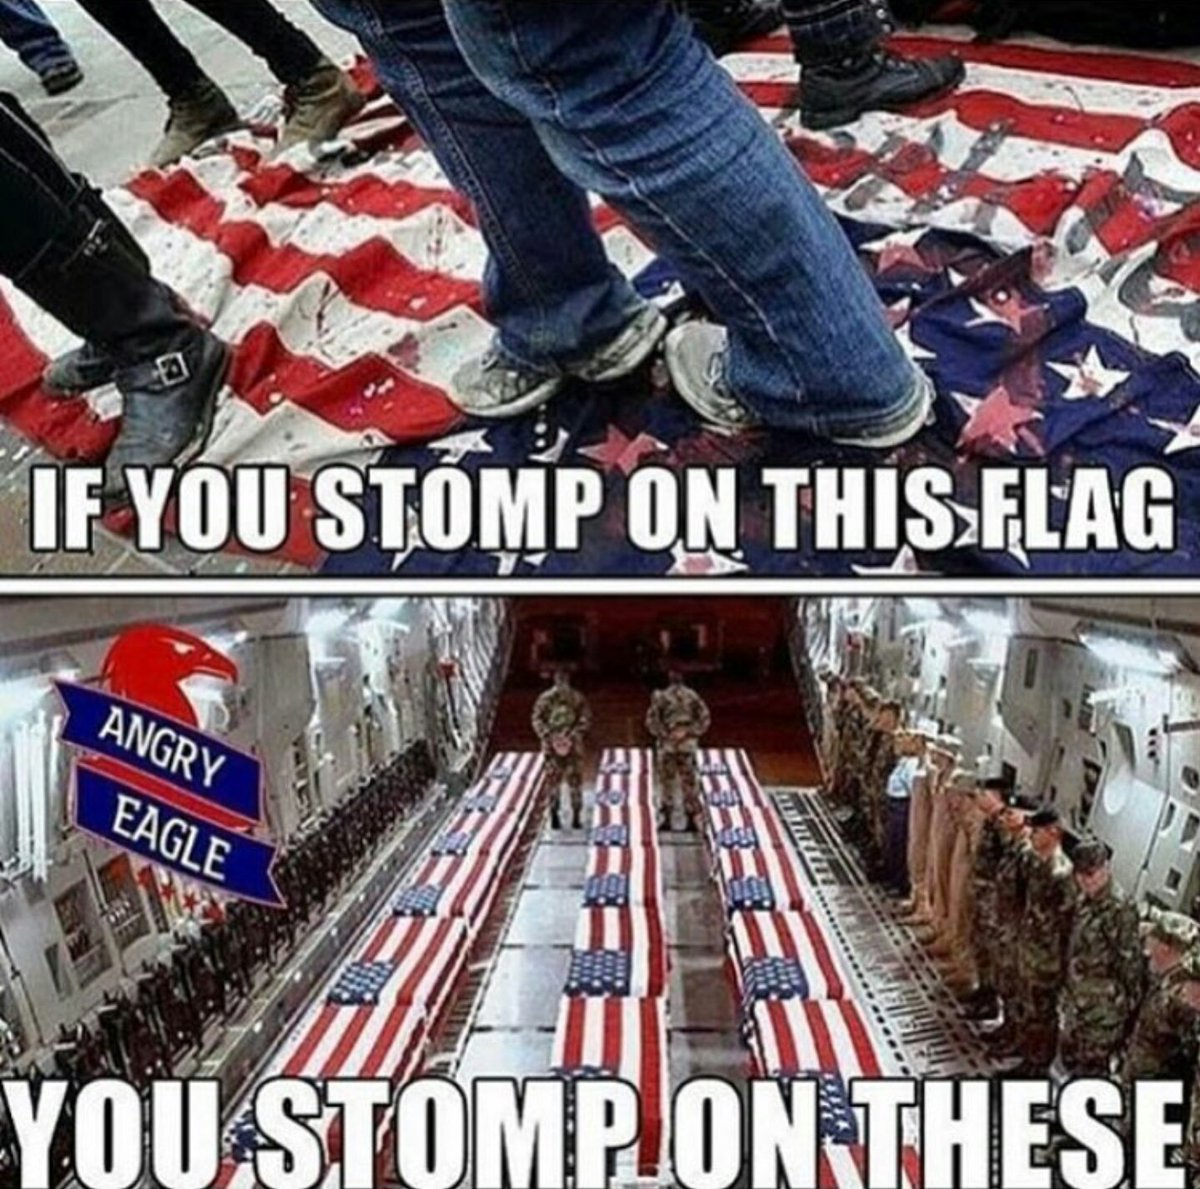 RT @Stevenwhirsch99: #ICantRespectAnyoneWho dares to stomp on the American flag, period. https://t.co/wwjVRmYdXh